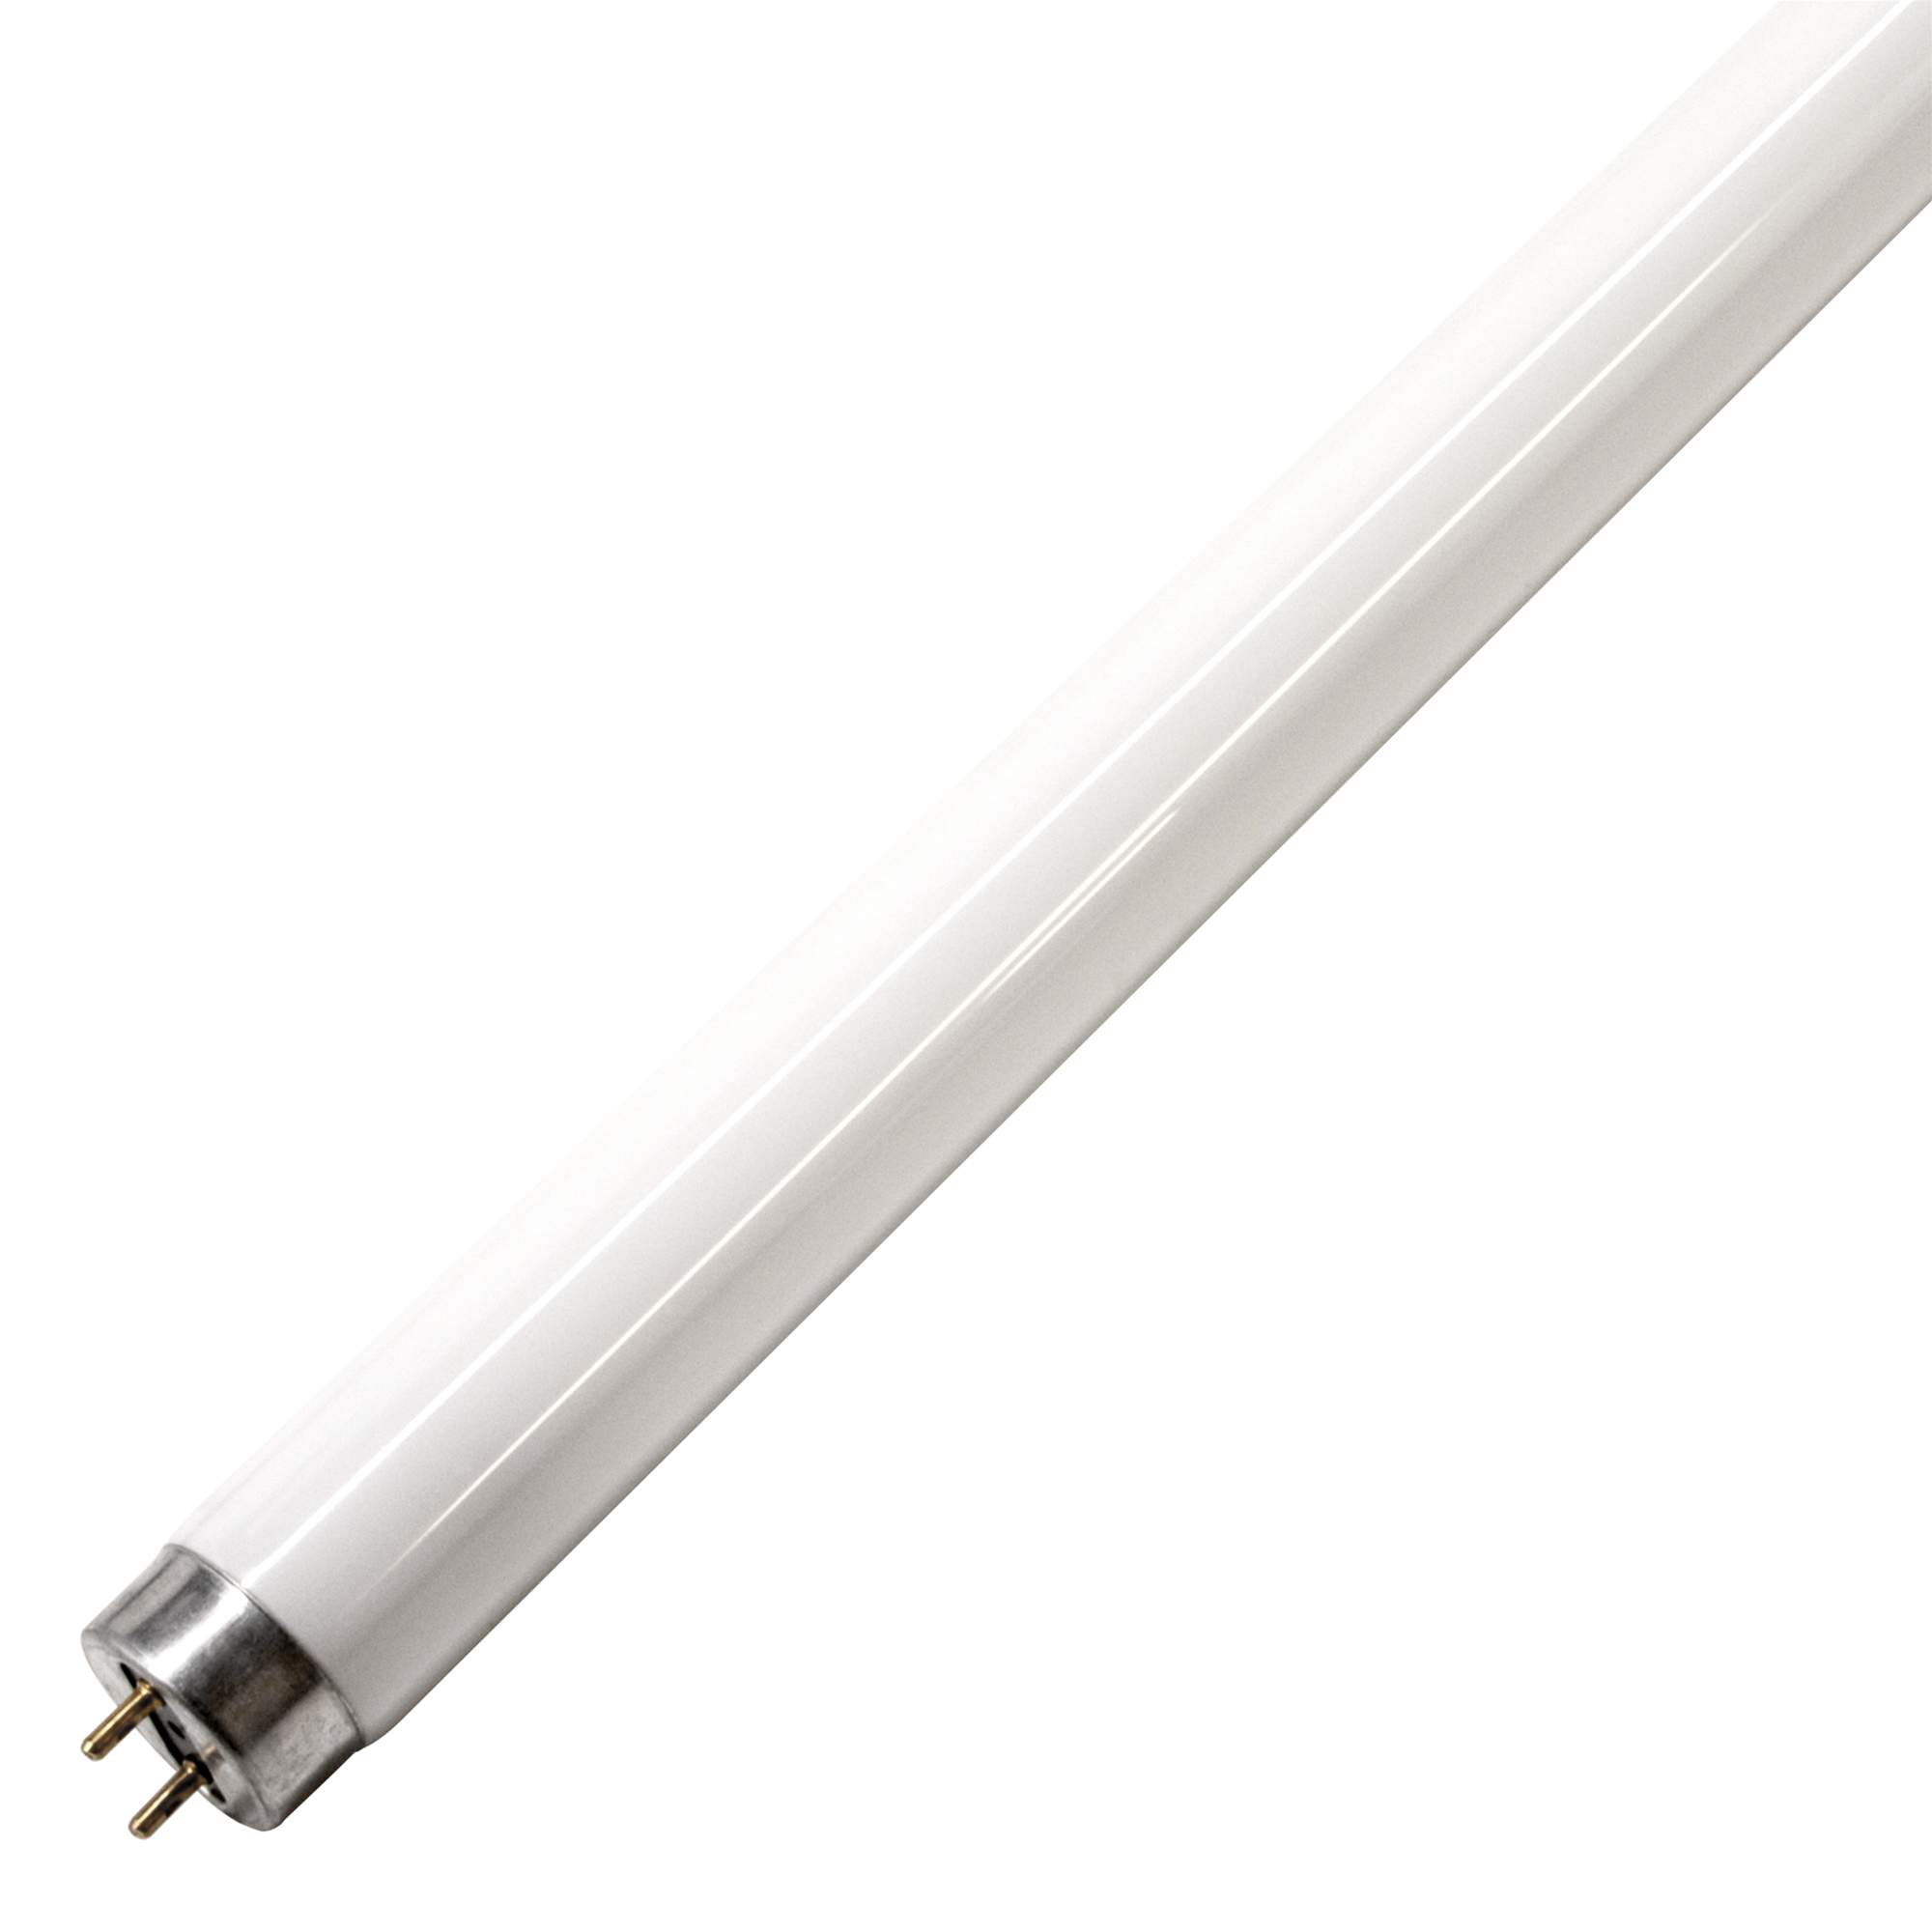 Fluorescent T8 58w Lamp 6000k Daylight Mr Resistor Lighting